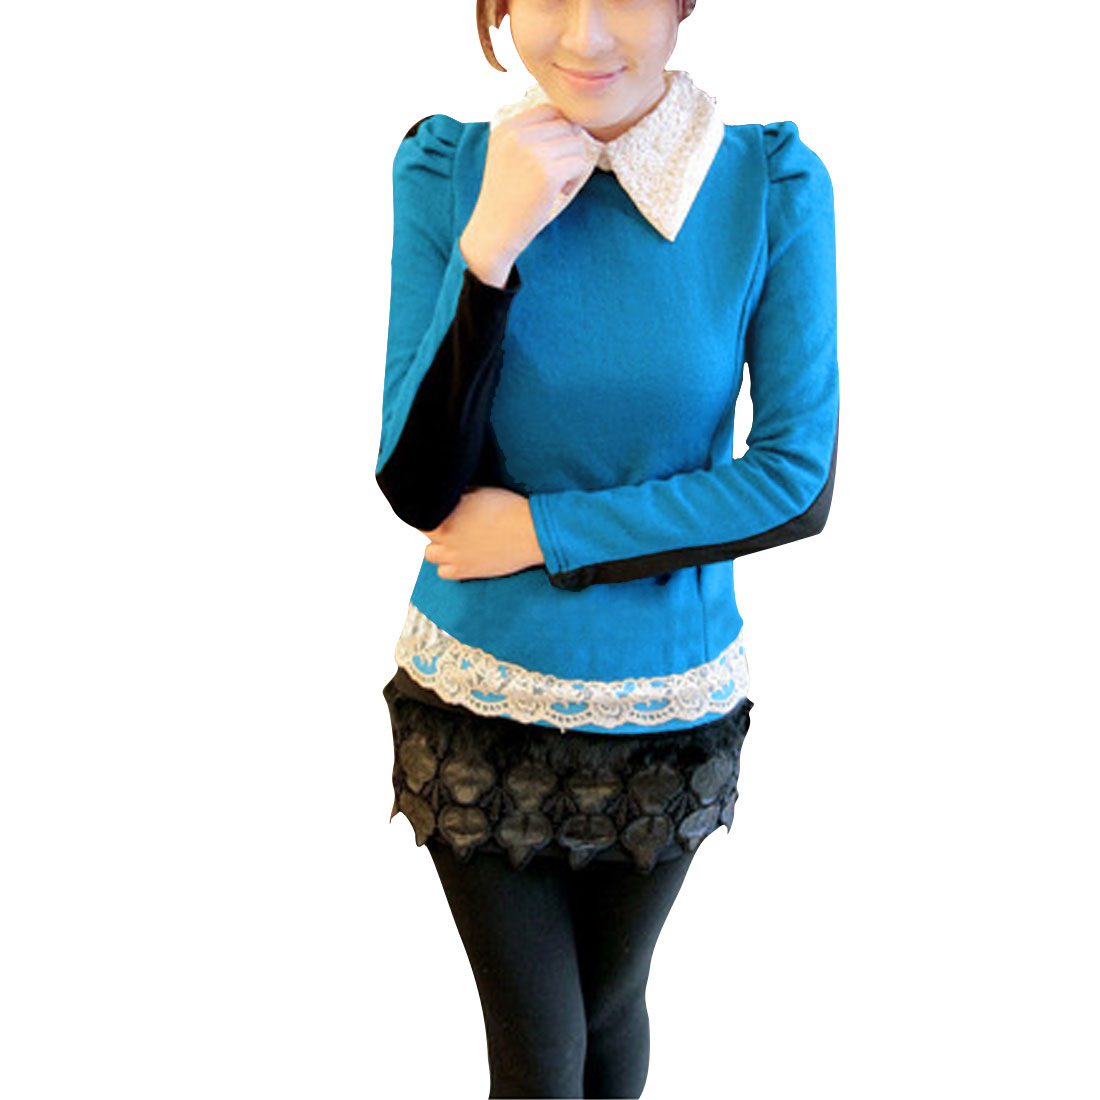 Ladies Teal Blue Black Embroidery Detail Pullover Stretchy Casual Shirt XS